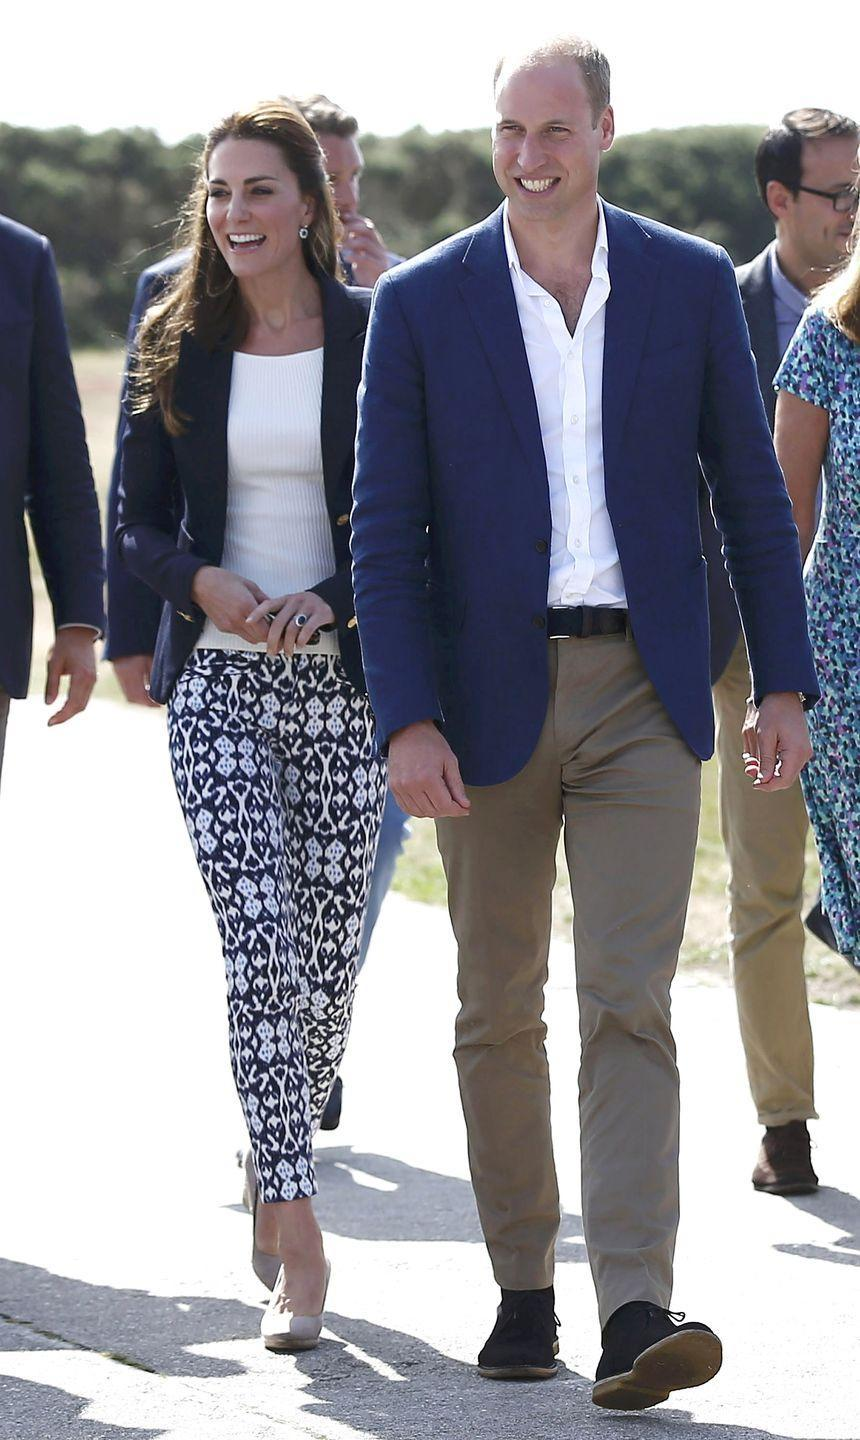 <p>Middleton wears printed skinny ankle pants by Gap, a white top, navy blazer, and nude wedged espadrilles while out in Cornwall with Prince William.</p>